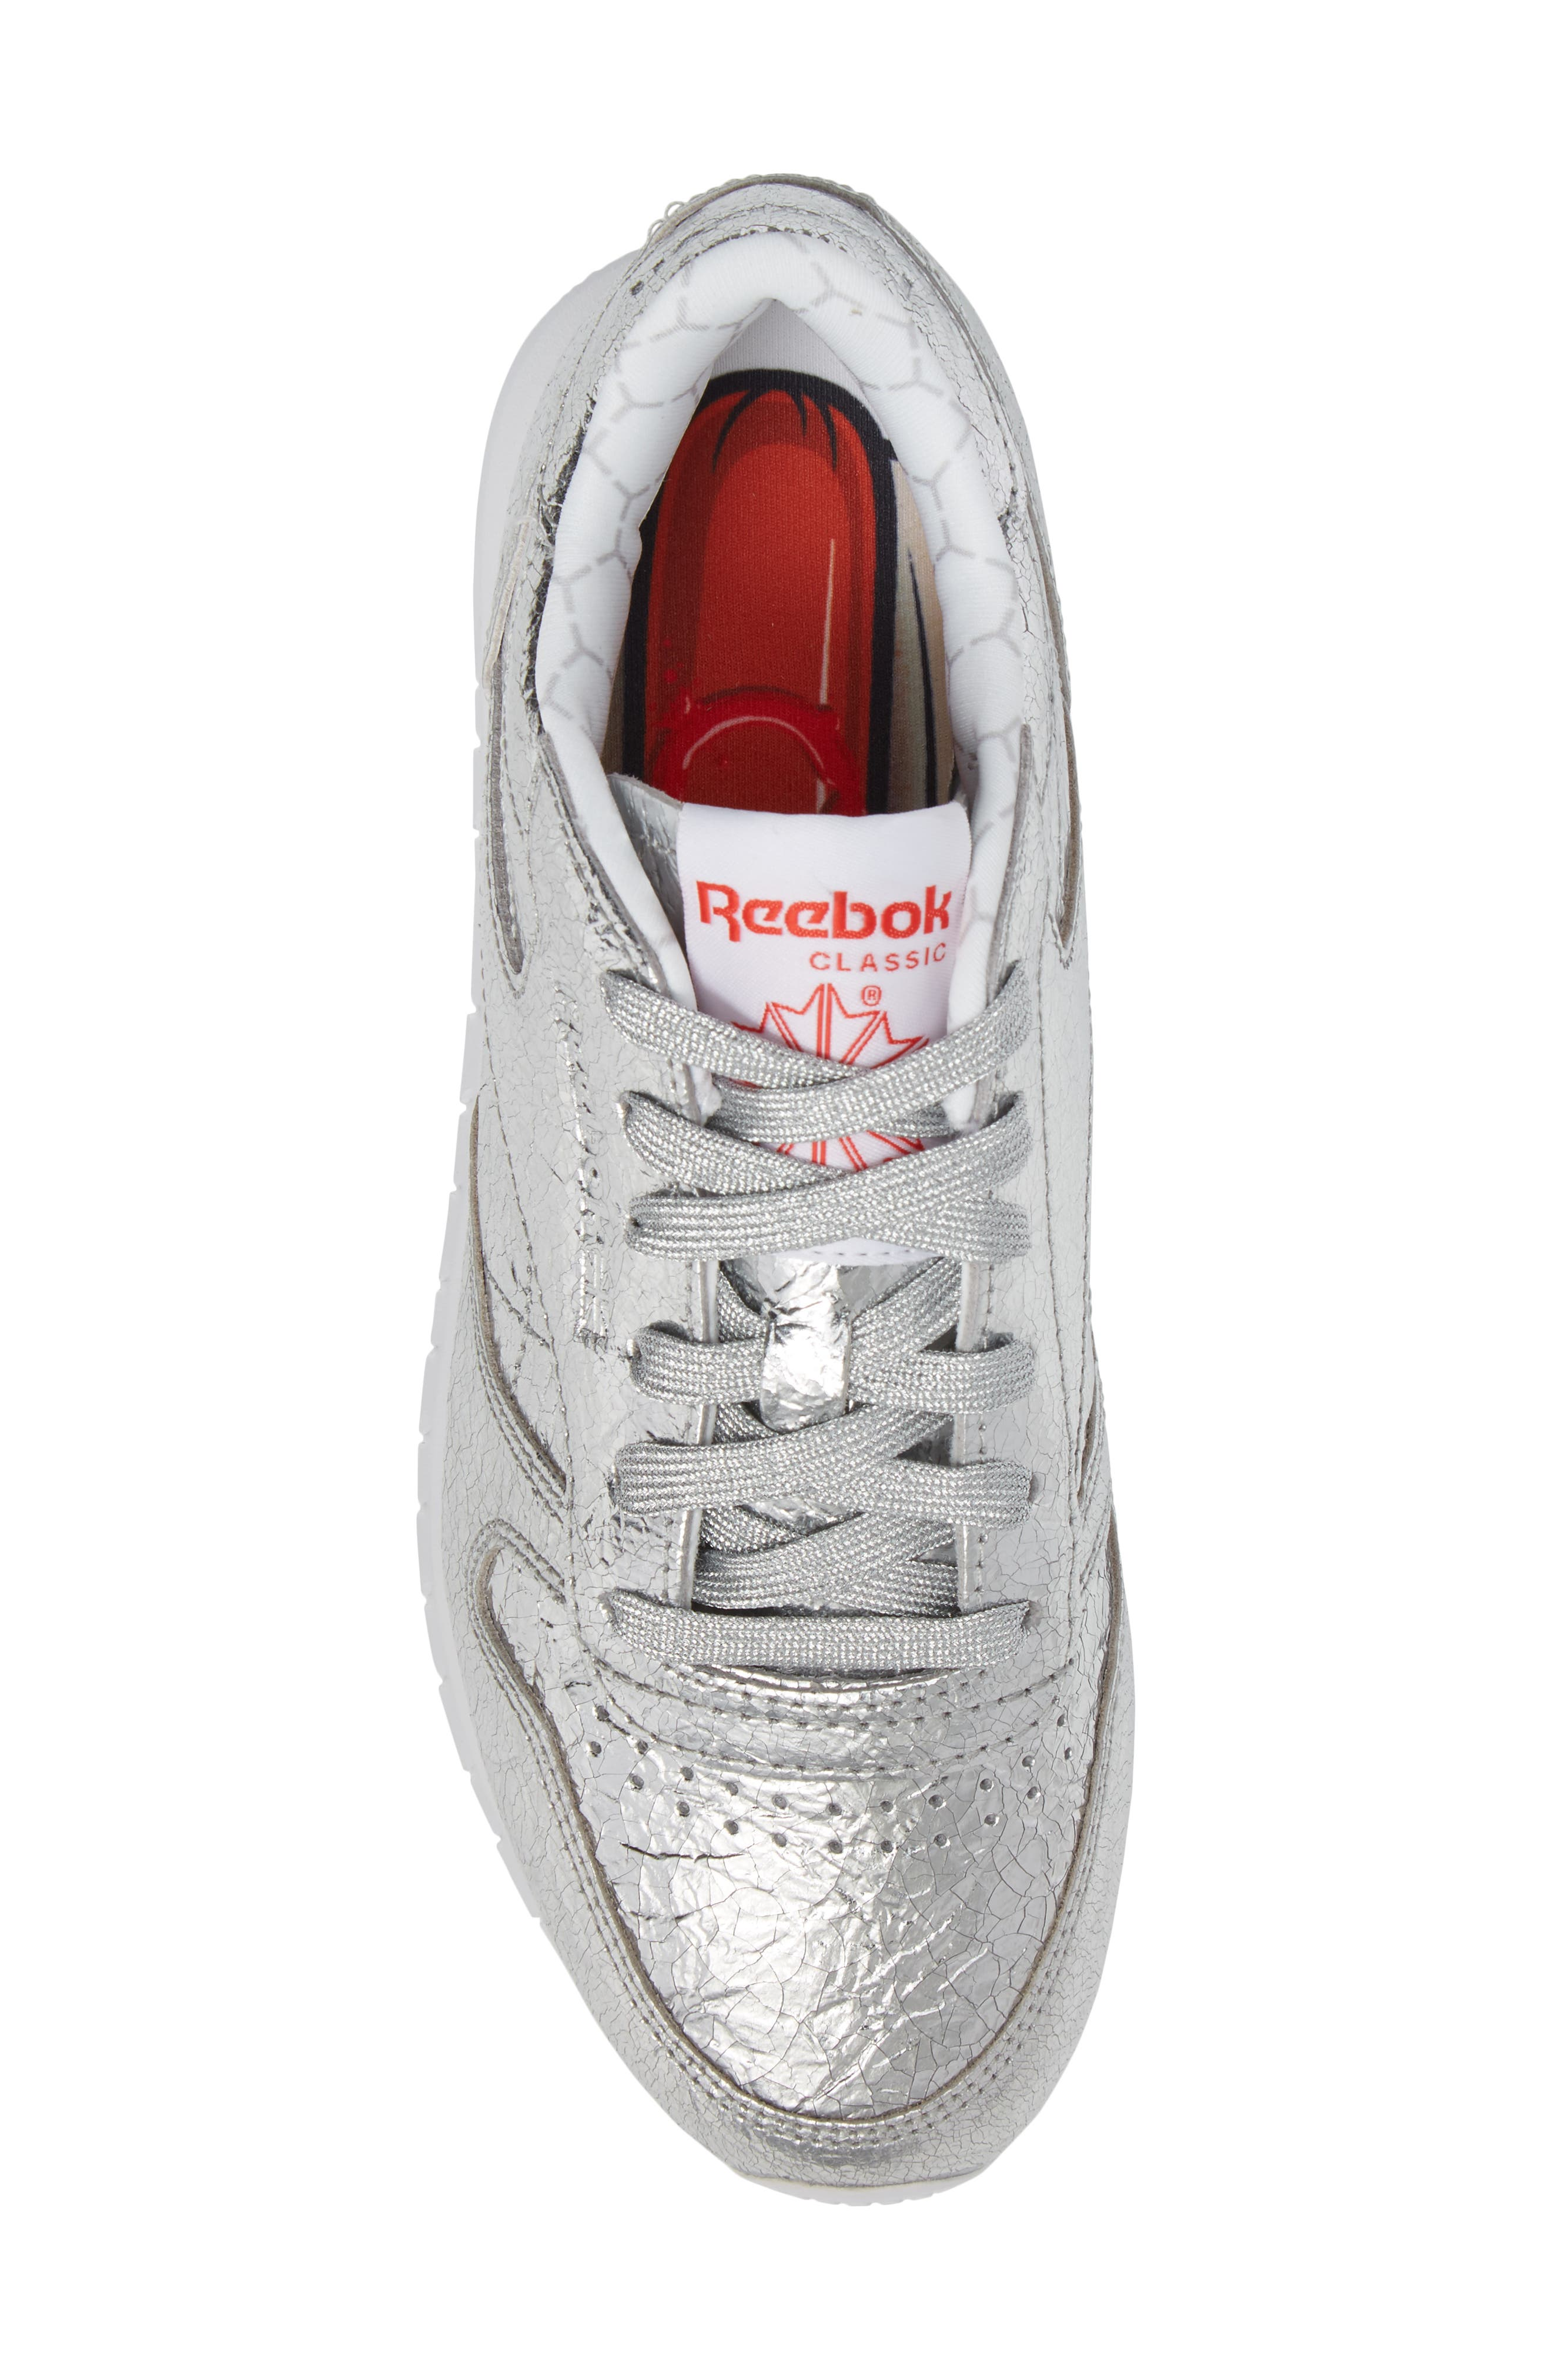 Classic Leather HD Foil Sneaker,                             Alternate thumbnail 5, color,                             Silver/ Grey/ Red/ White